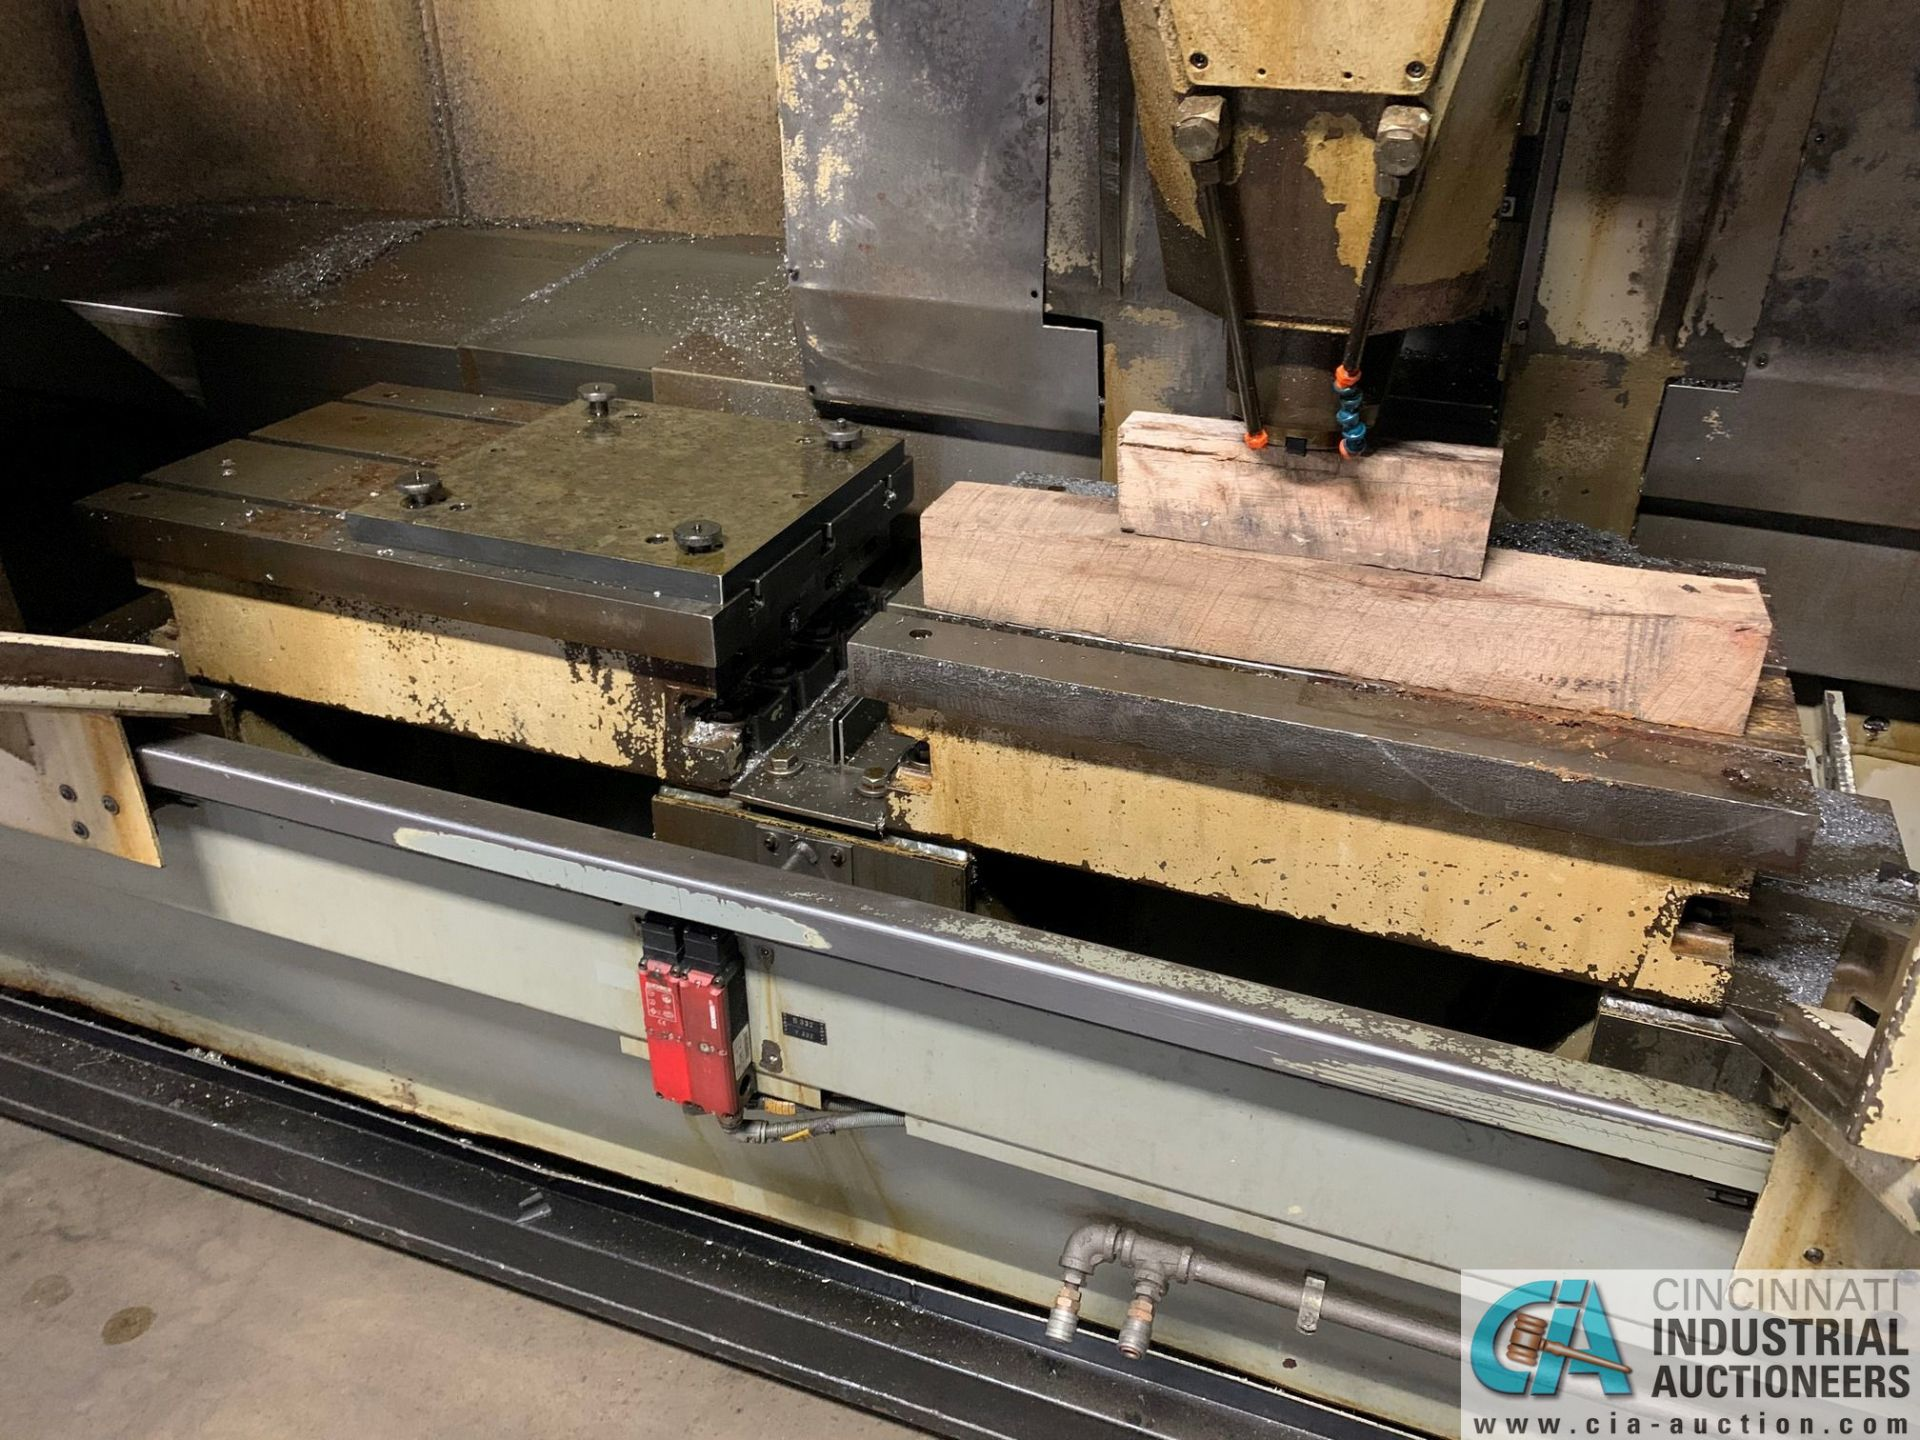 MONARCH UNISIGN TYPE UNIVERS 4 ZONALL 4 CNC VERTICAL MACHINING CENTER; S/N 99Z403, NO. 4293, - Image 3 of 13